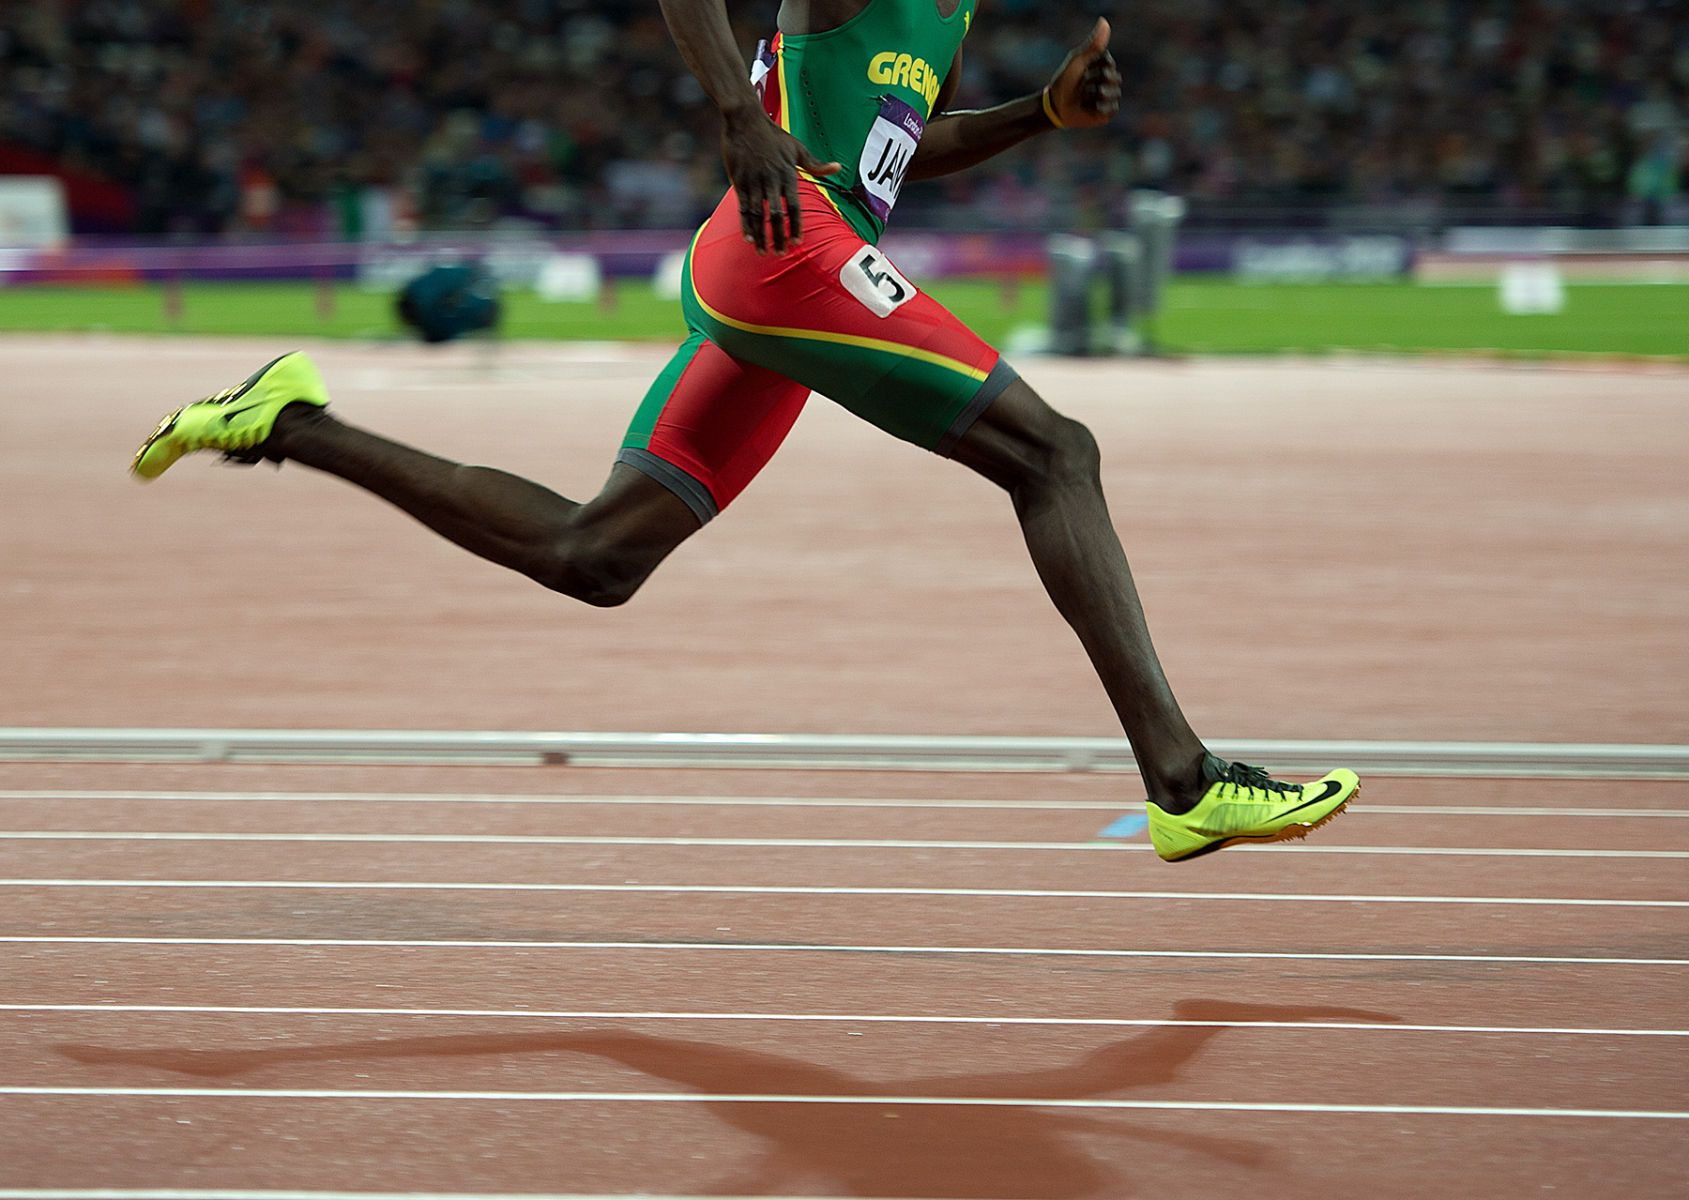 1london2012_kirani_james_legs_400_track_and_field_image_jeff_cohen_photo_lb.jpg